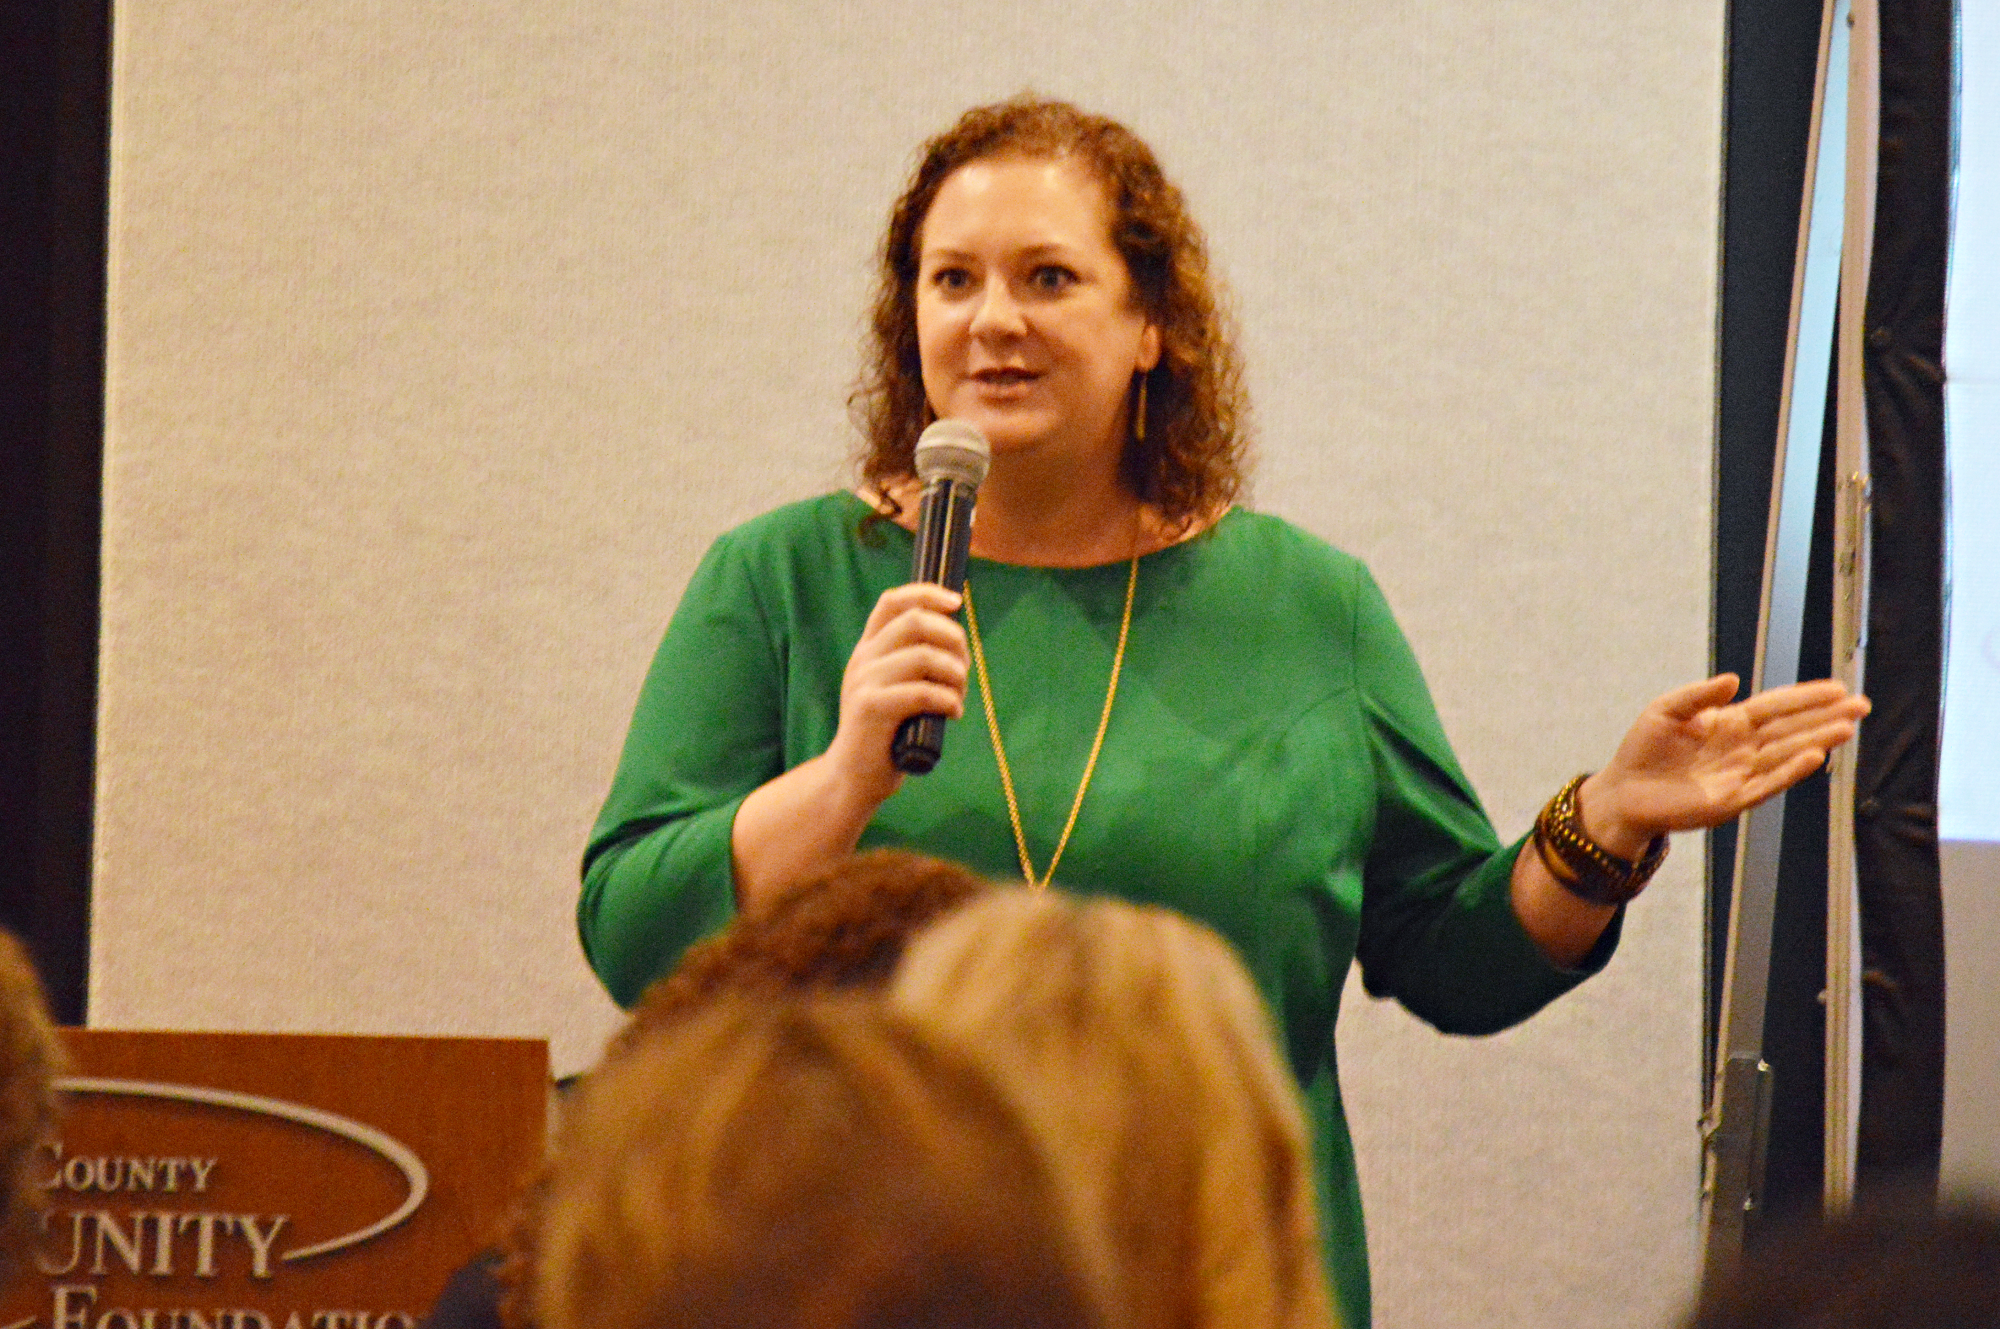 Sarah Harmeyer, Chief People Gatherer at Neighbor's Table, was the guest speaker at the 18th Annual Women's Tea to support the Women's Fund of Porter County.